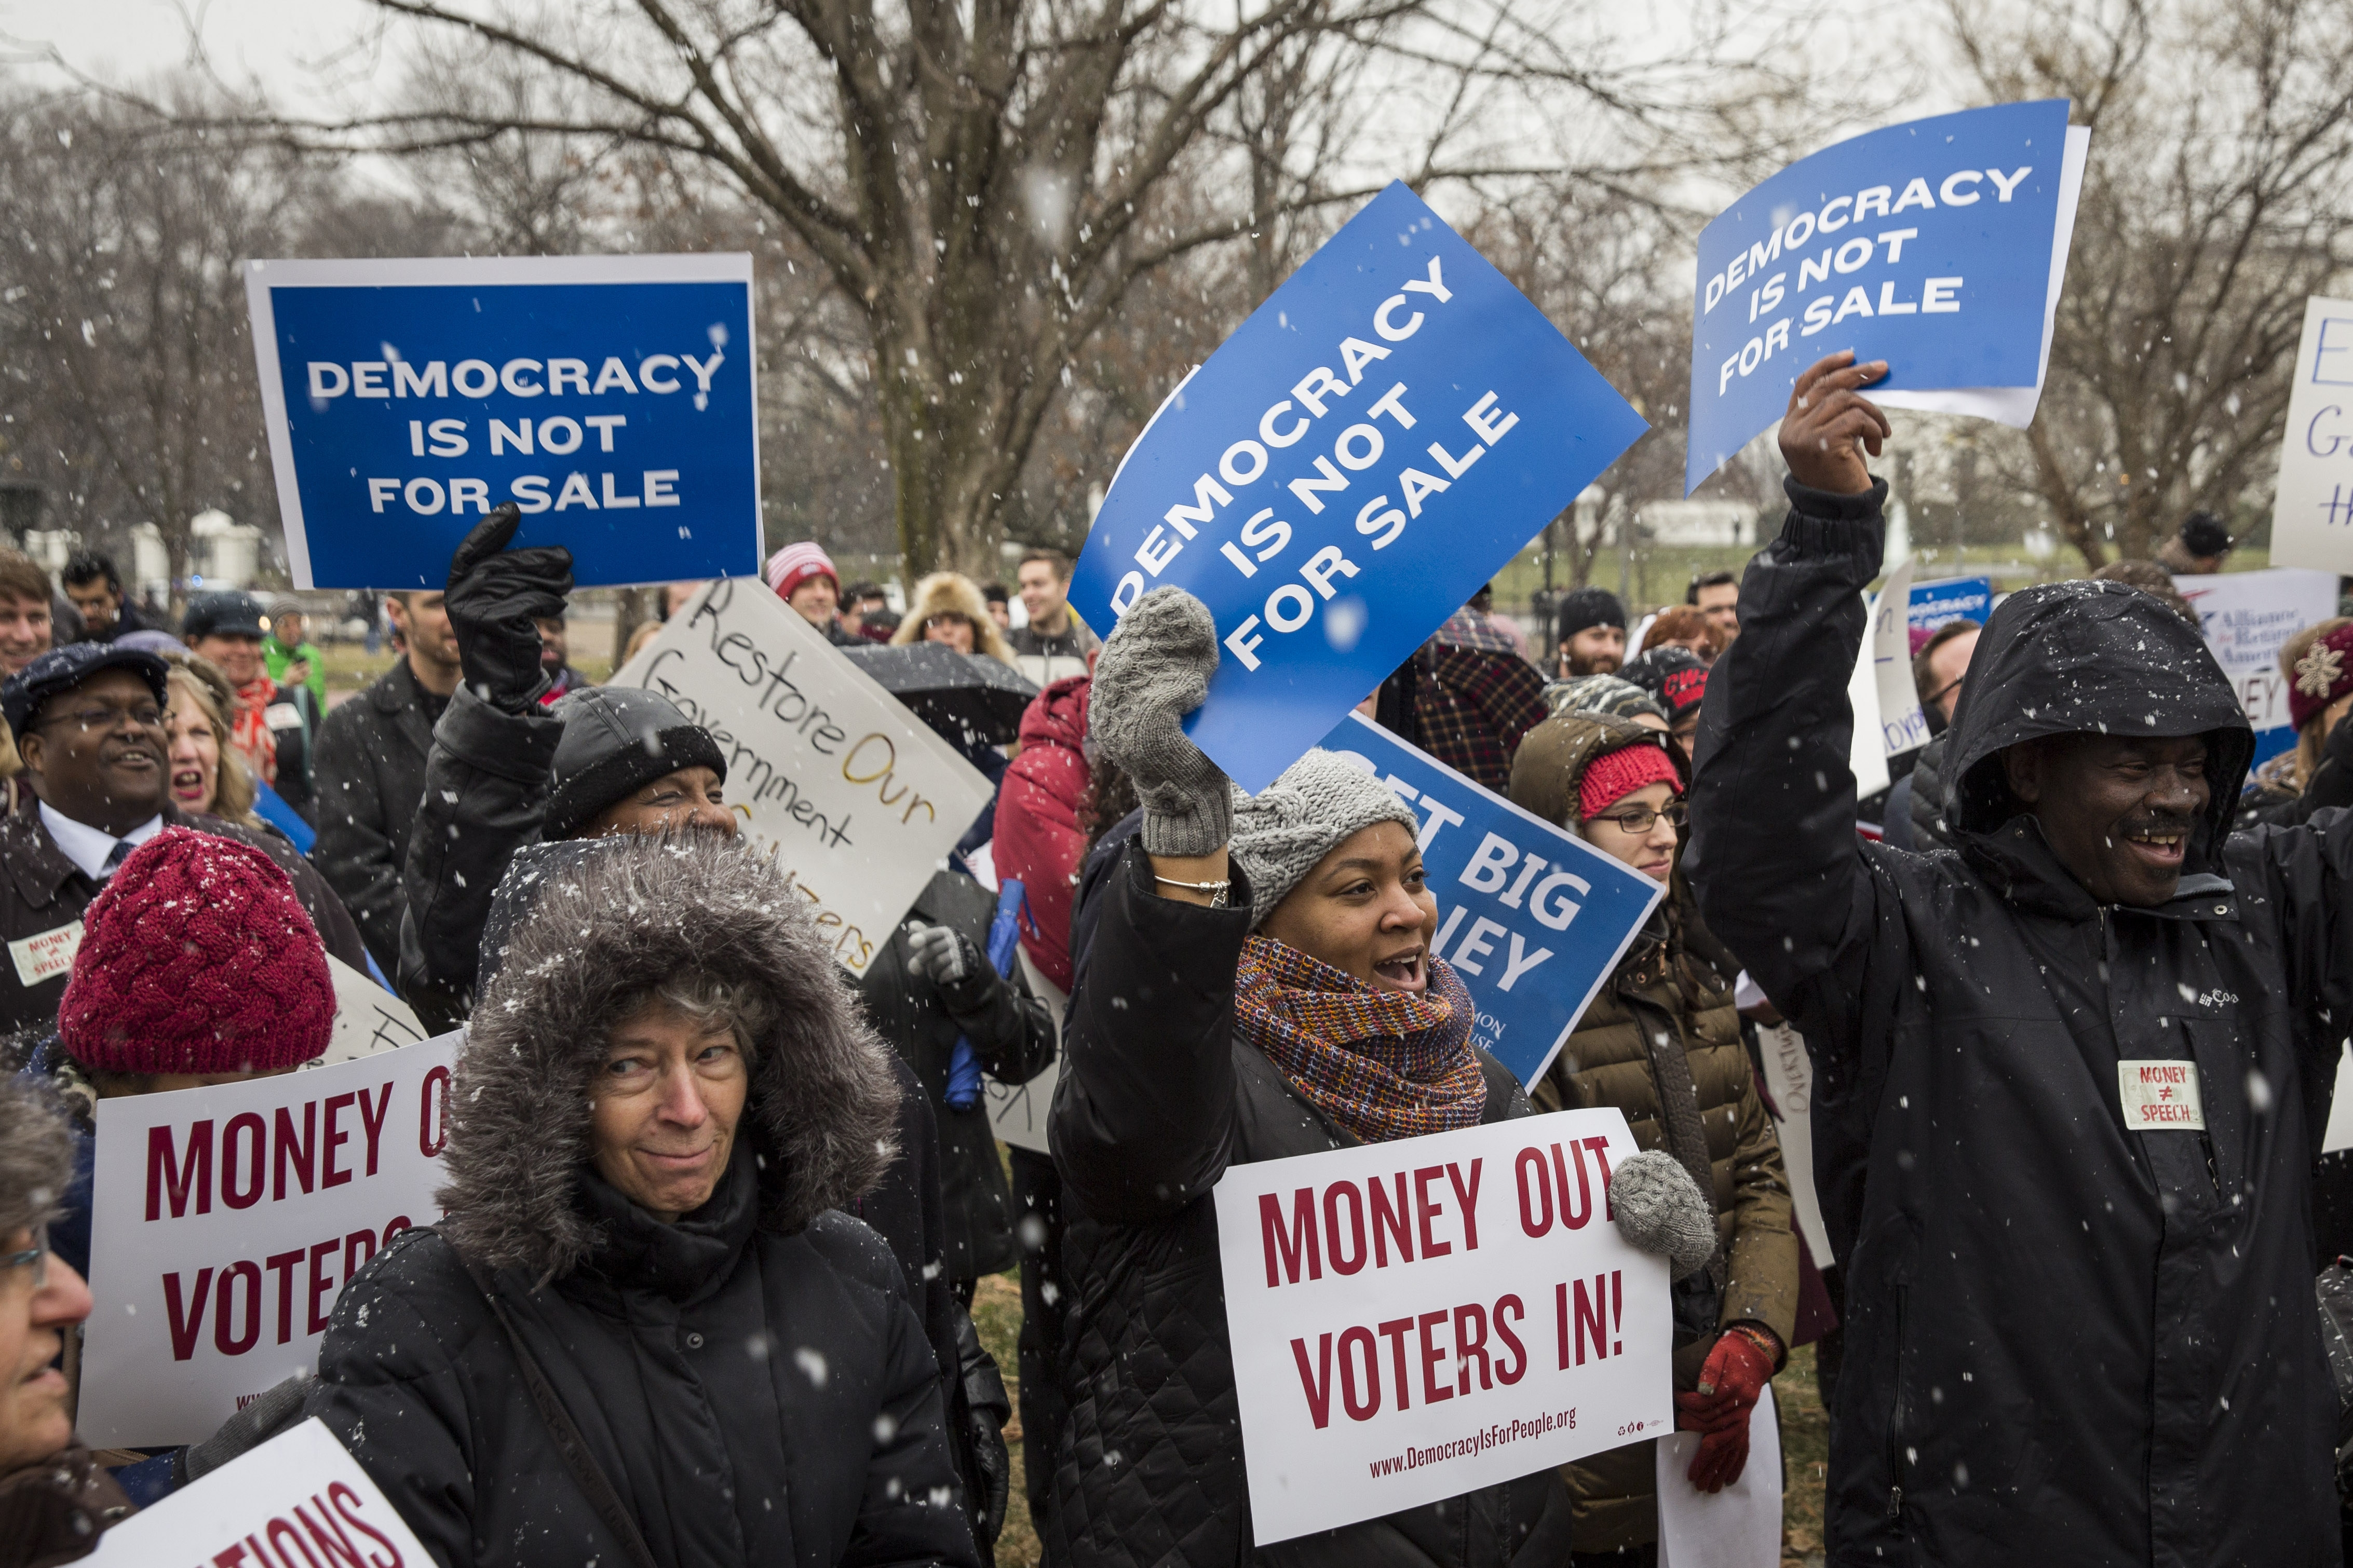 Attendees hold signs and cheer during a rally calling for an end to corporate money in politics and to mark the fifth anniversary of the Supreme Court's Citizens United decision, at Lafayette Square near the White House.